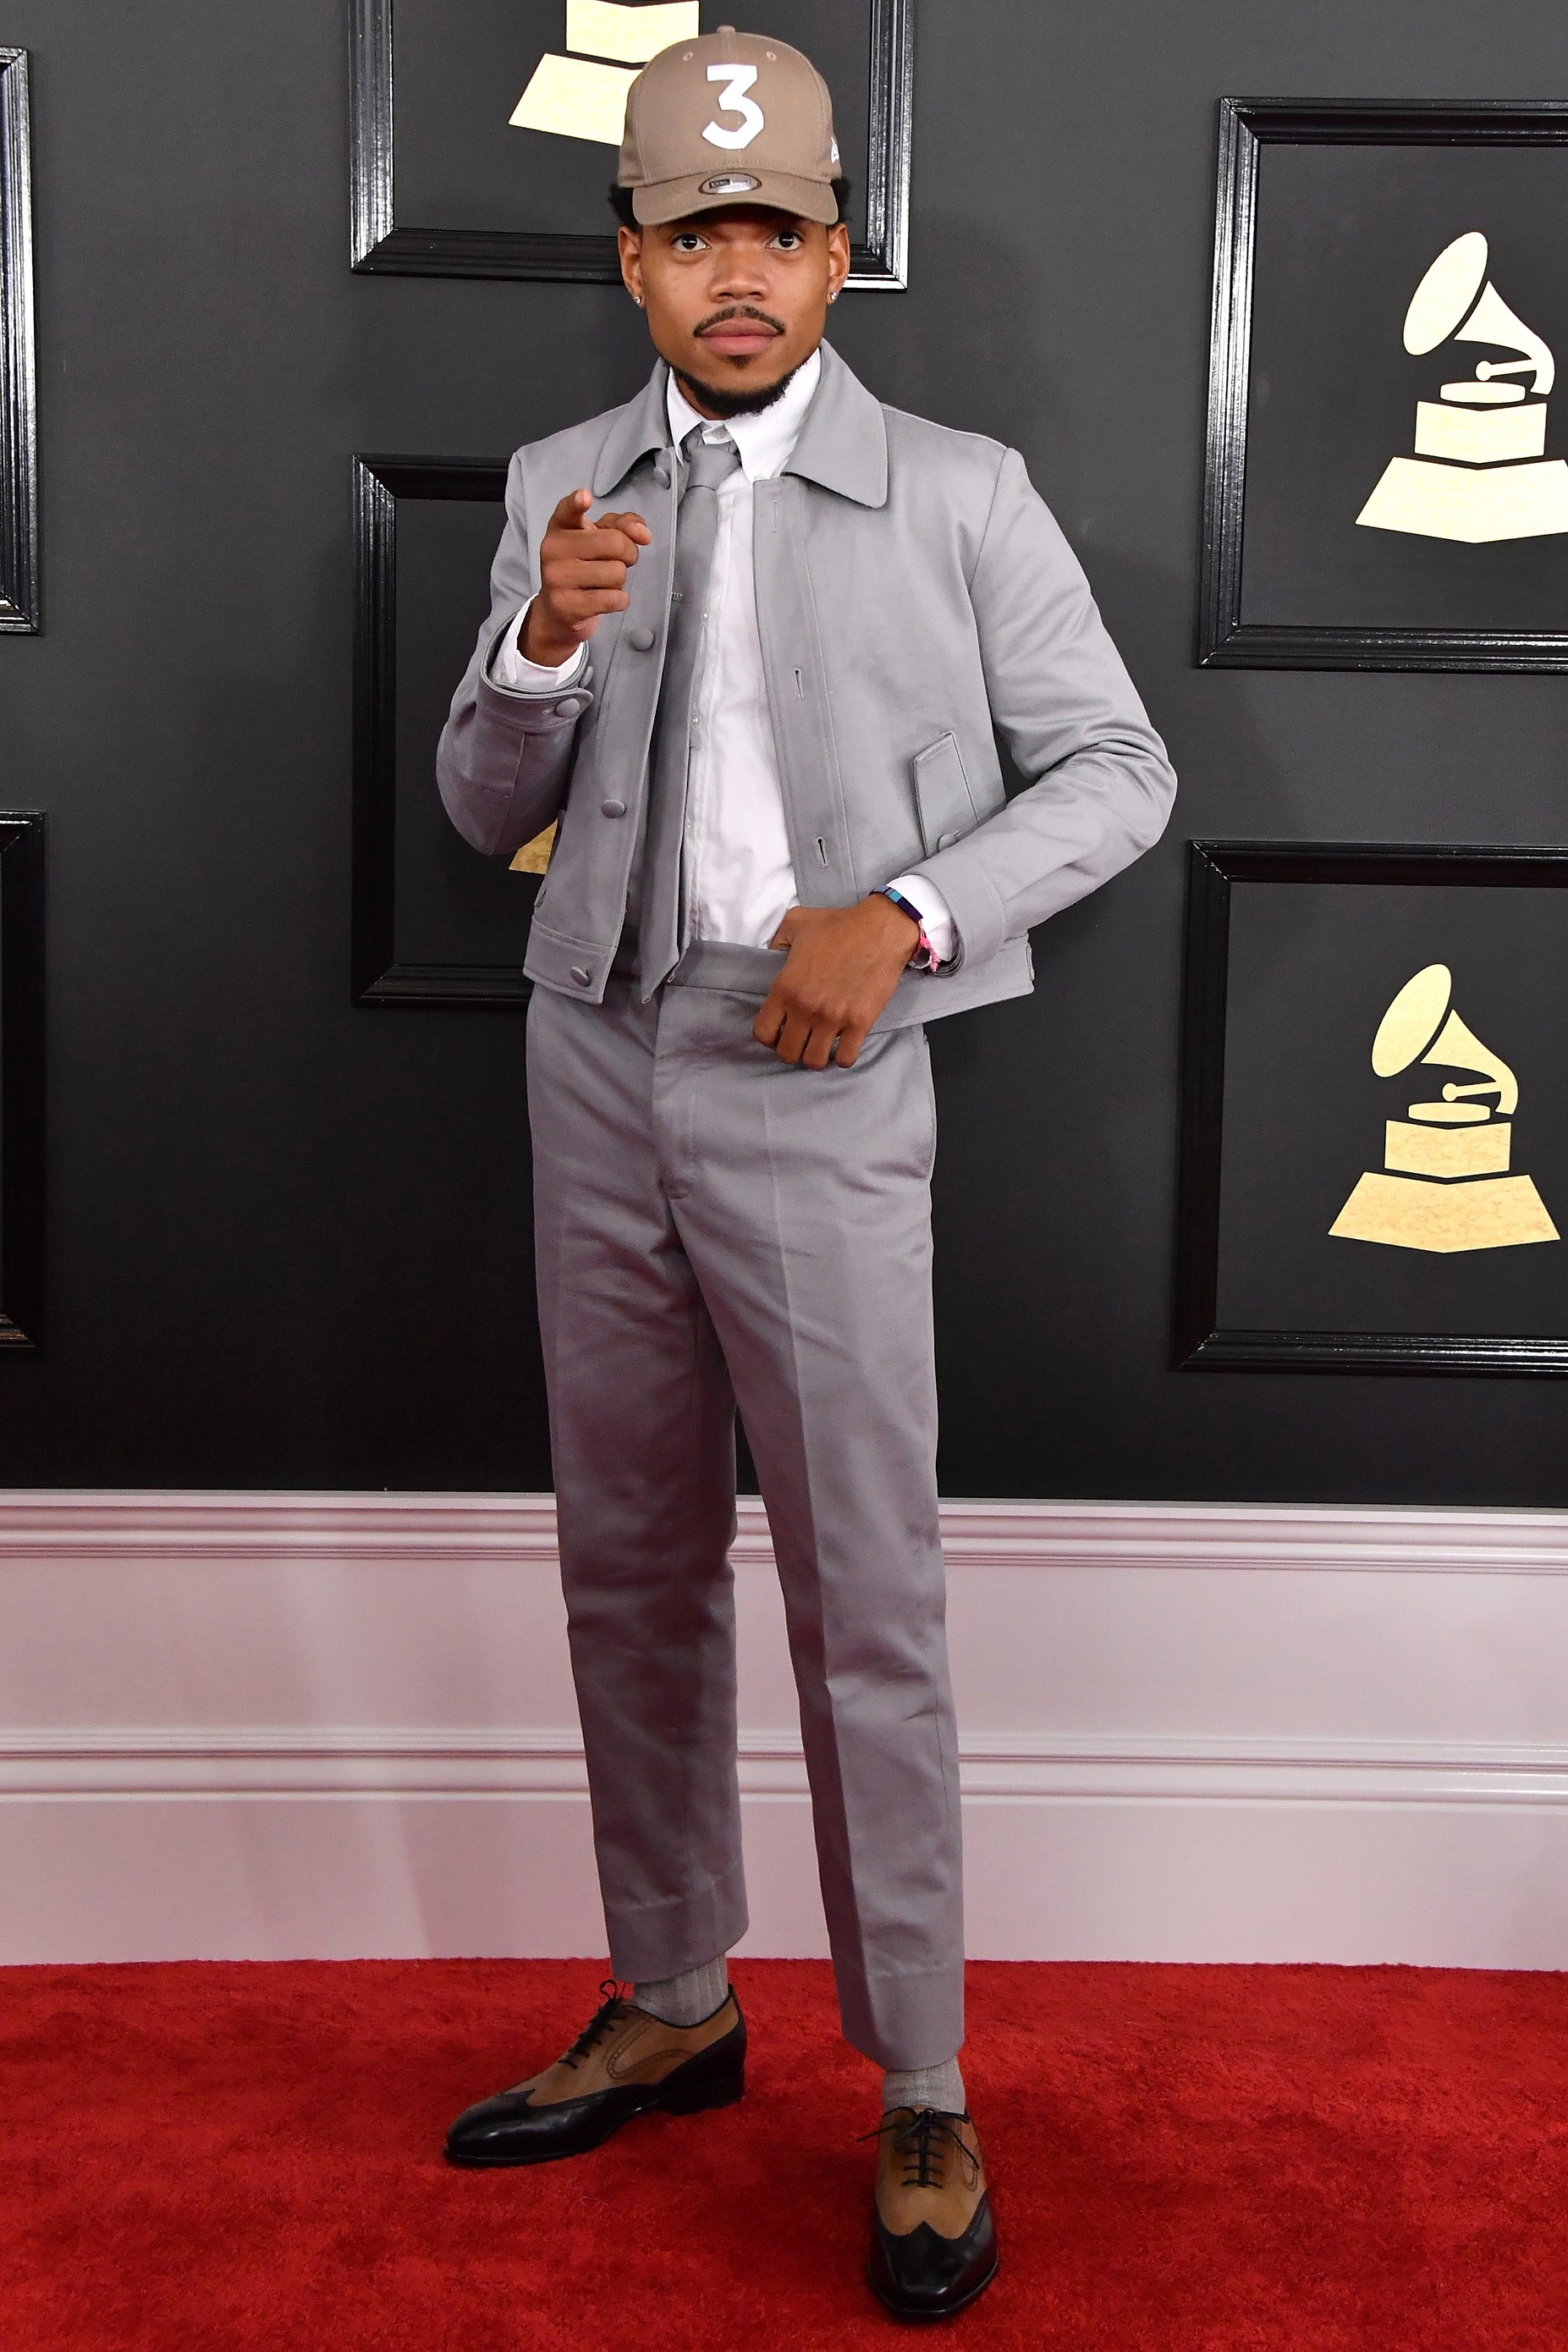 Chance the Rapper slayed in this almost all-grey ensemble. The matching tie really took it to the next level, with just the right amount of contrast from his sharp oxford derbys.